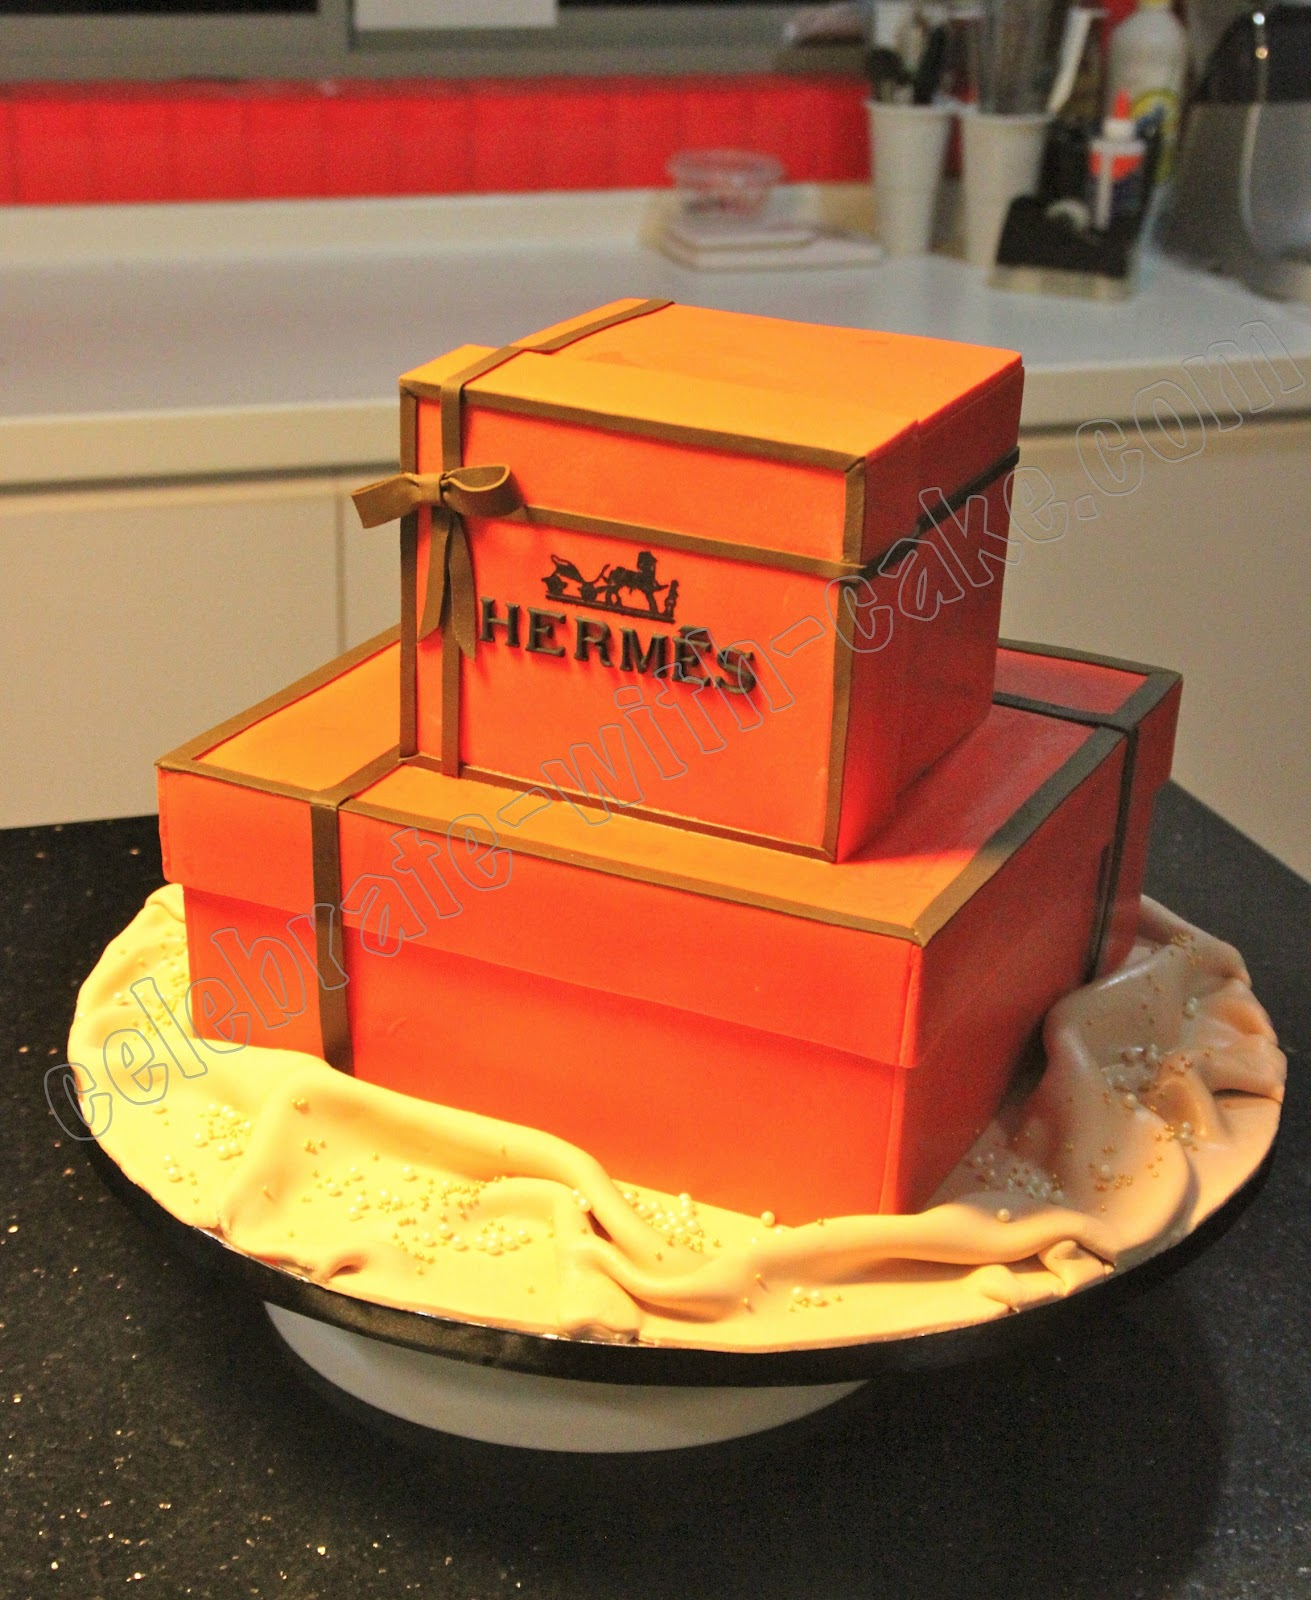 Celebrate With Cake! Hermes Box Cakes